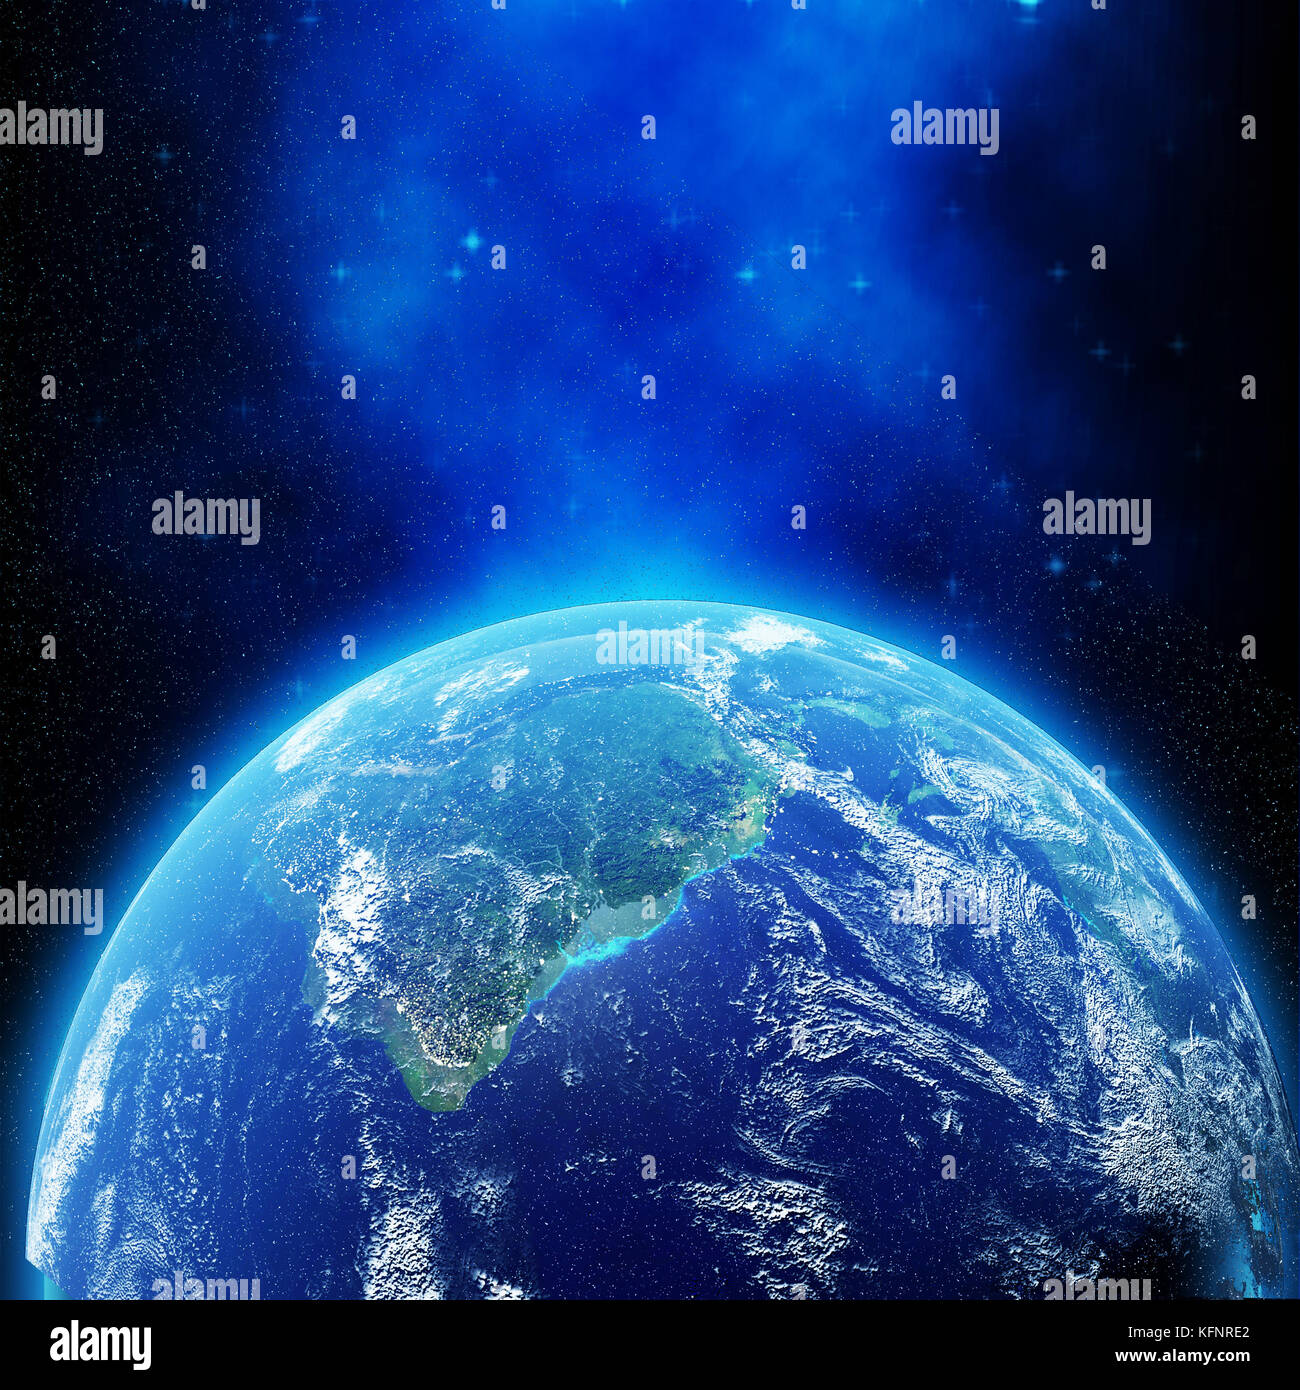 View of planet earth from space with light effect in 3D rendering. Elements of this image furnished by NASA - Stock Image